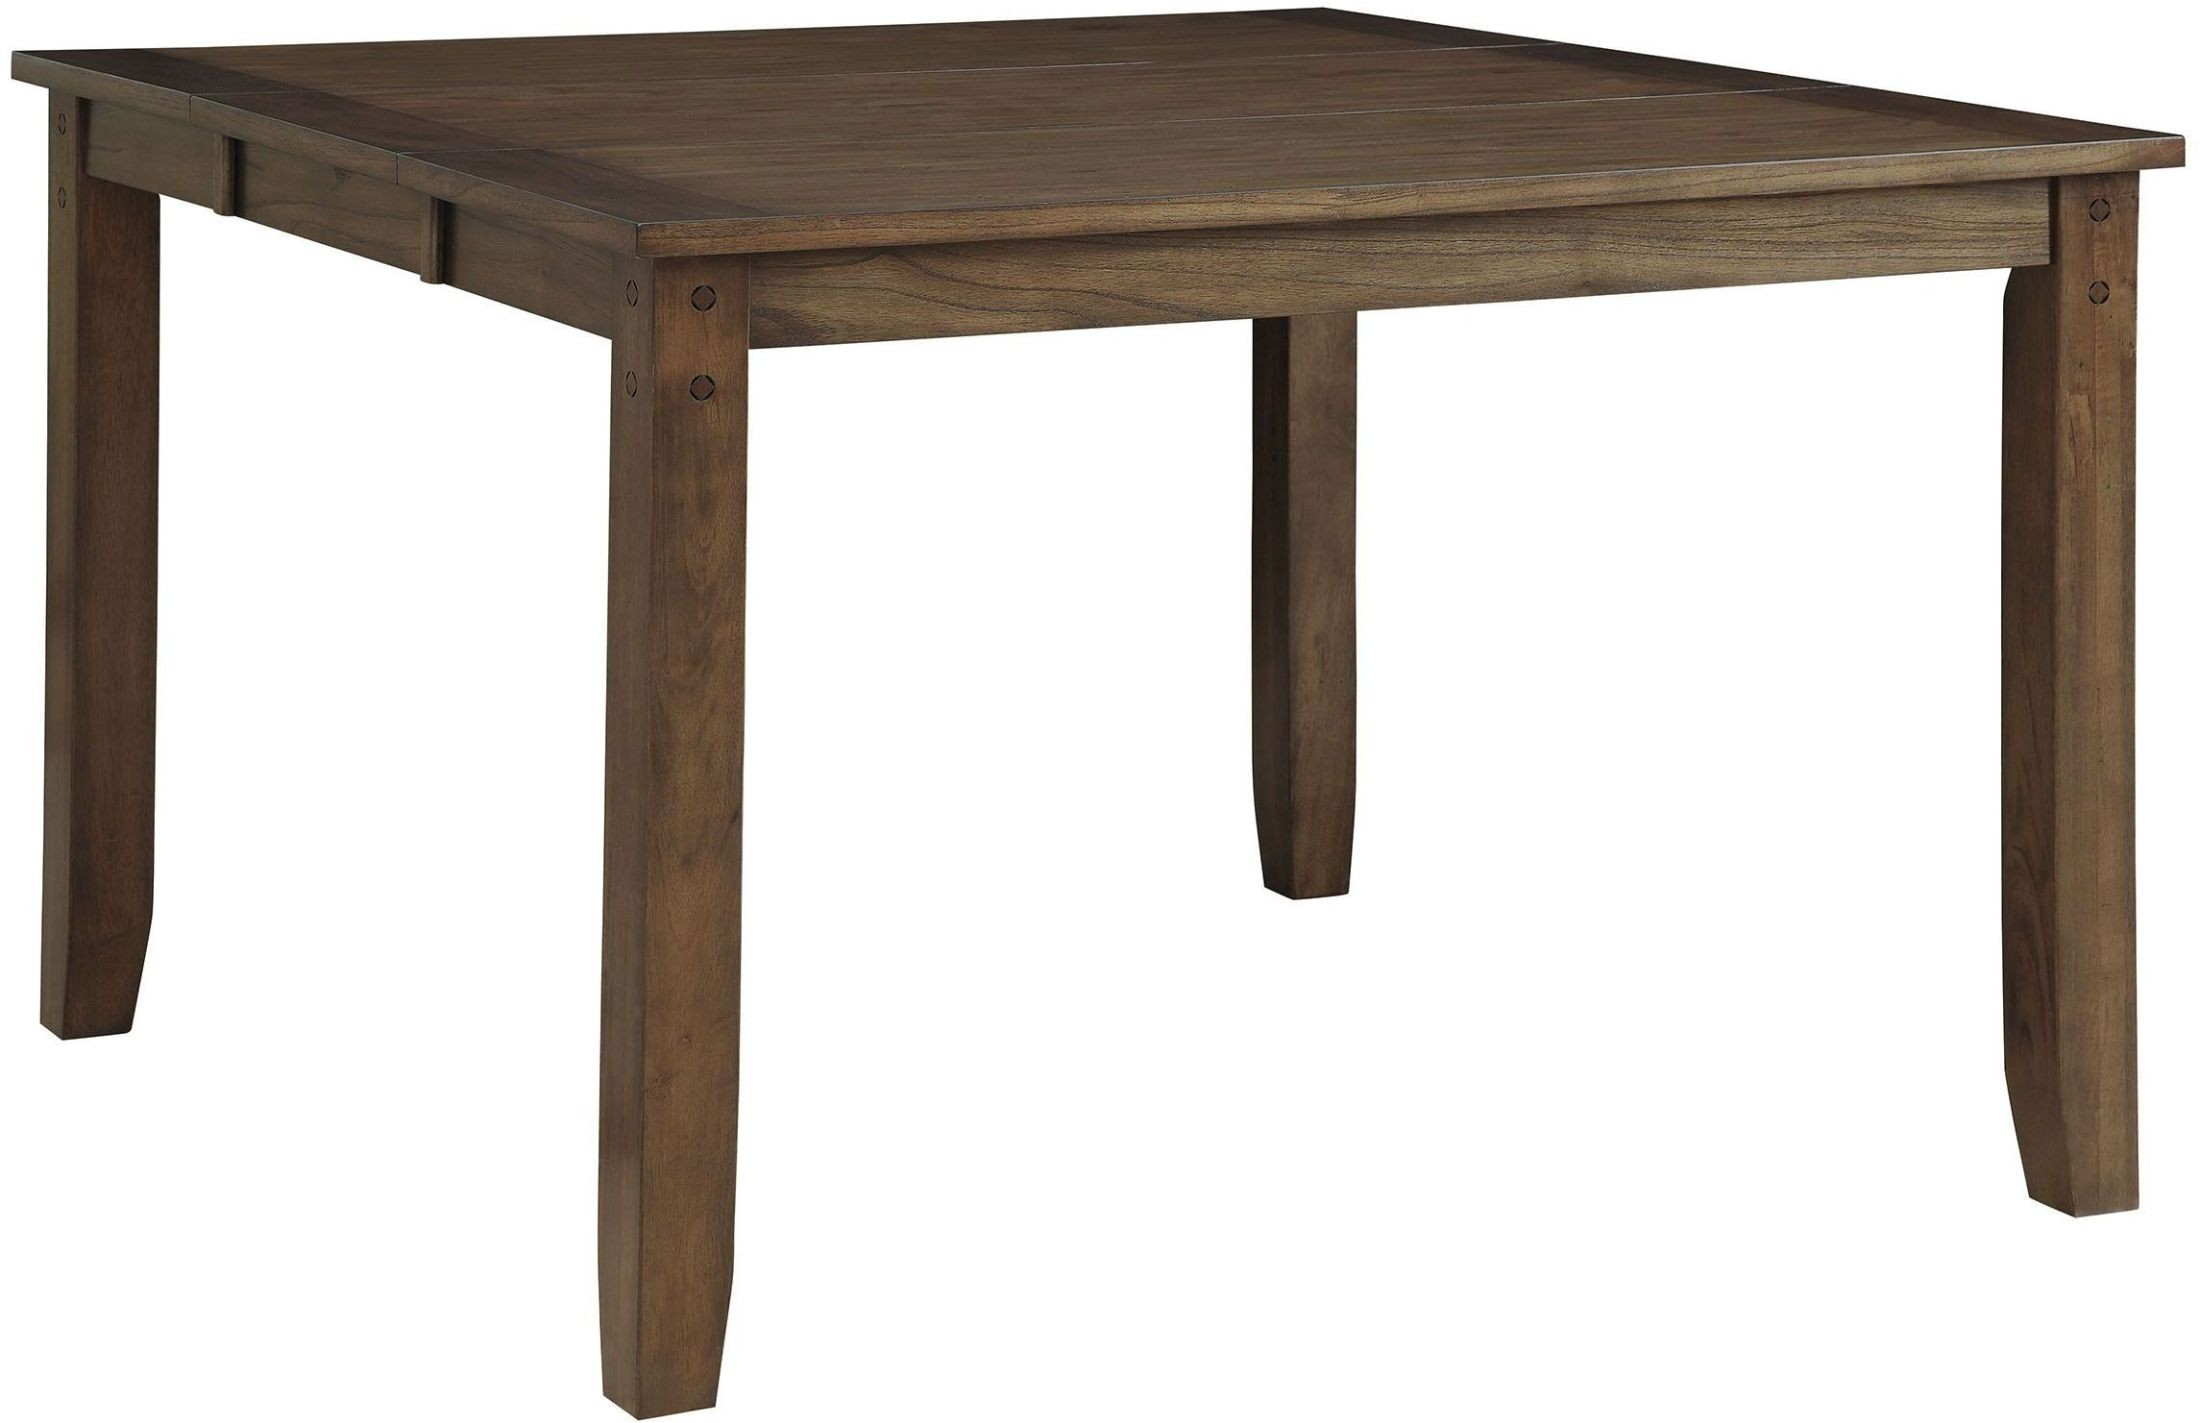 Counter Height Rustic Dining Table : Home > Brockton Ii Rustic Oak Extendable Counter Height Dining Table